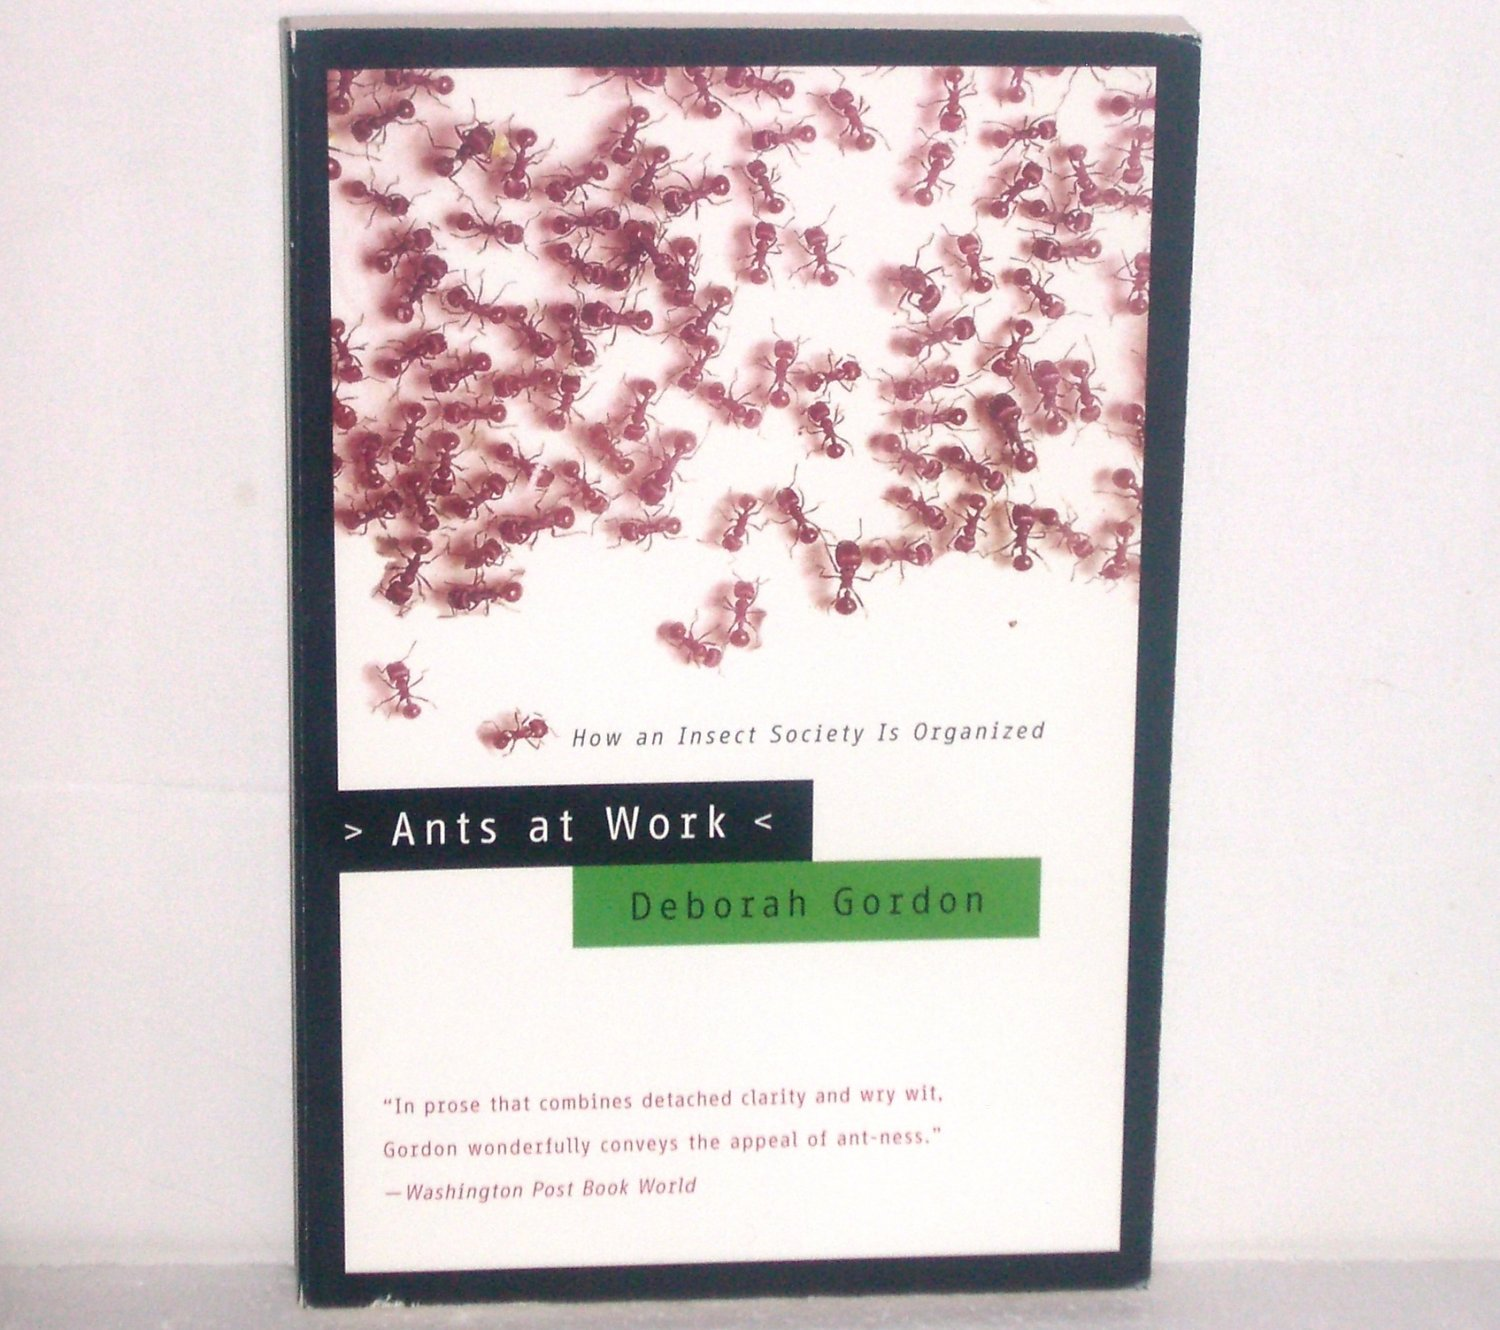 Ants at Work: How an Insect Society is Organized by Deborah Gordon Science and Evolution 2000